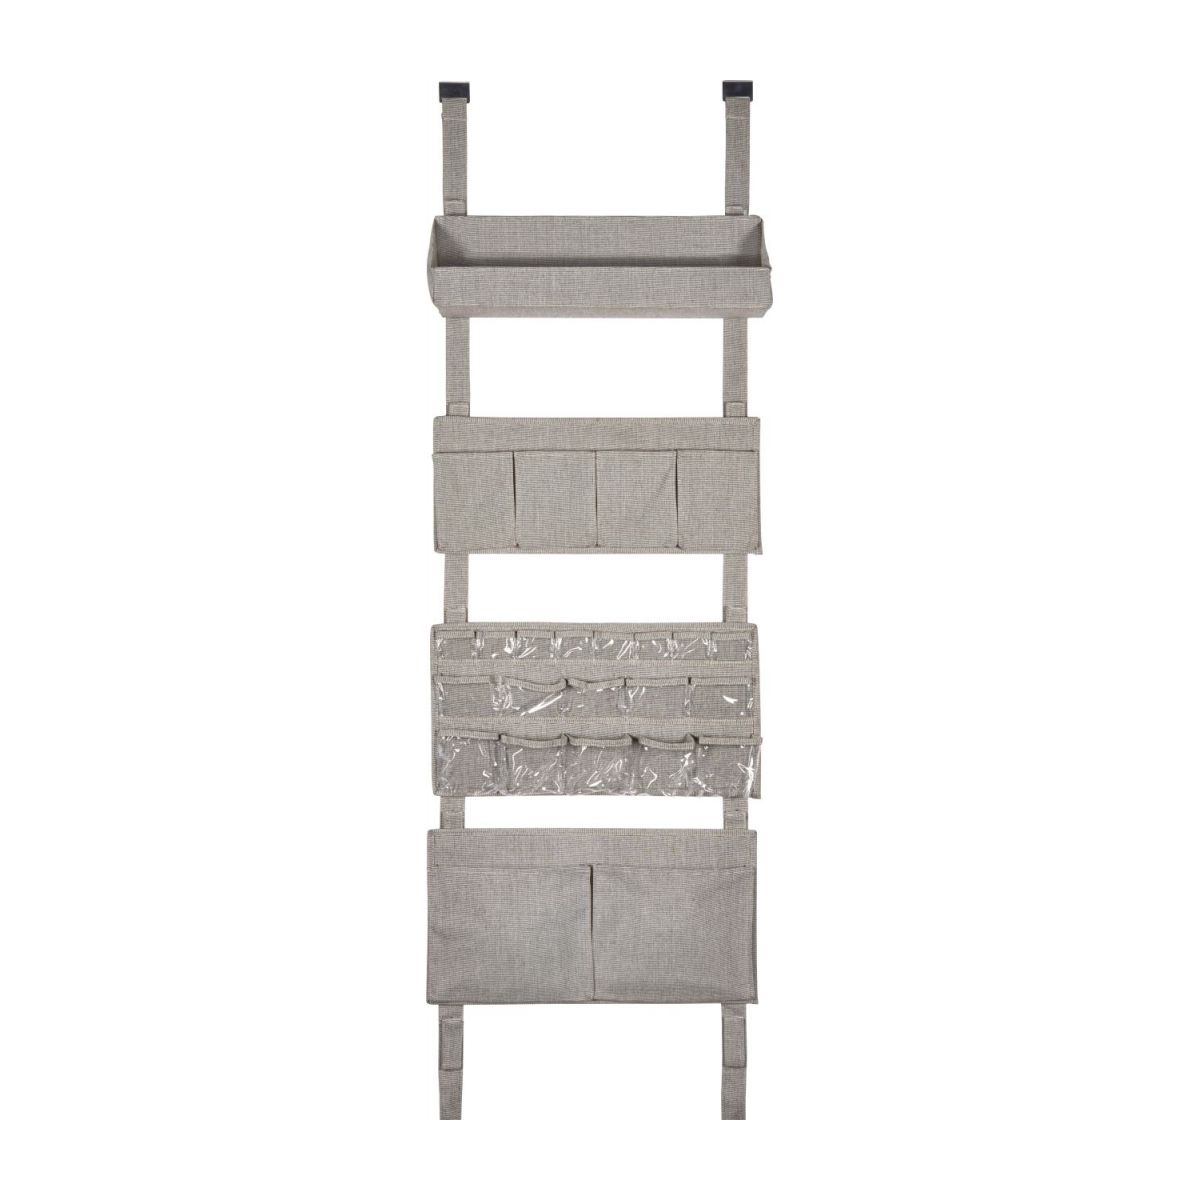 Wall modular storage with pockets, grey fabric and bamboo n°1